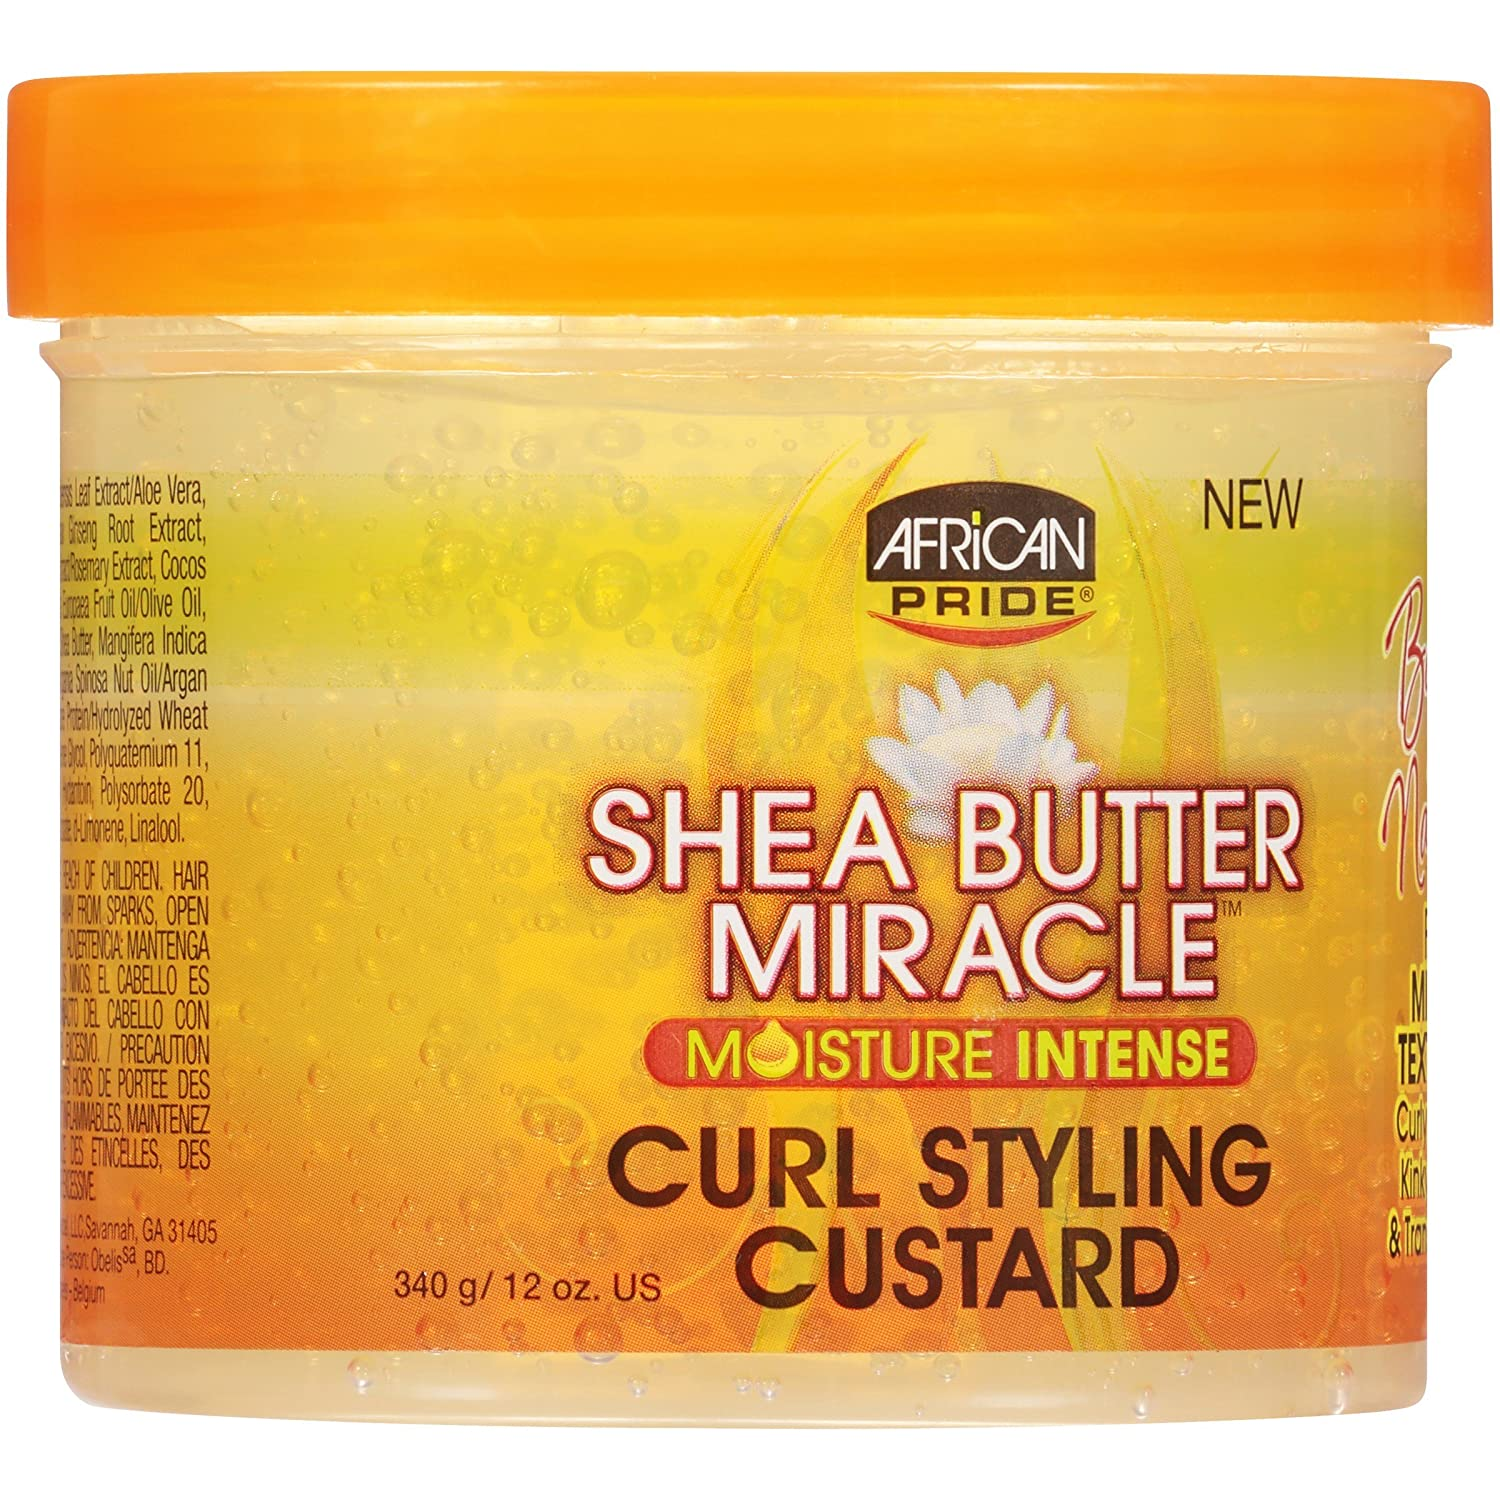 African Pride Shea Butter Miracle Curl Styling Custard